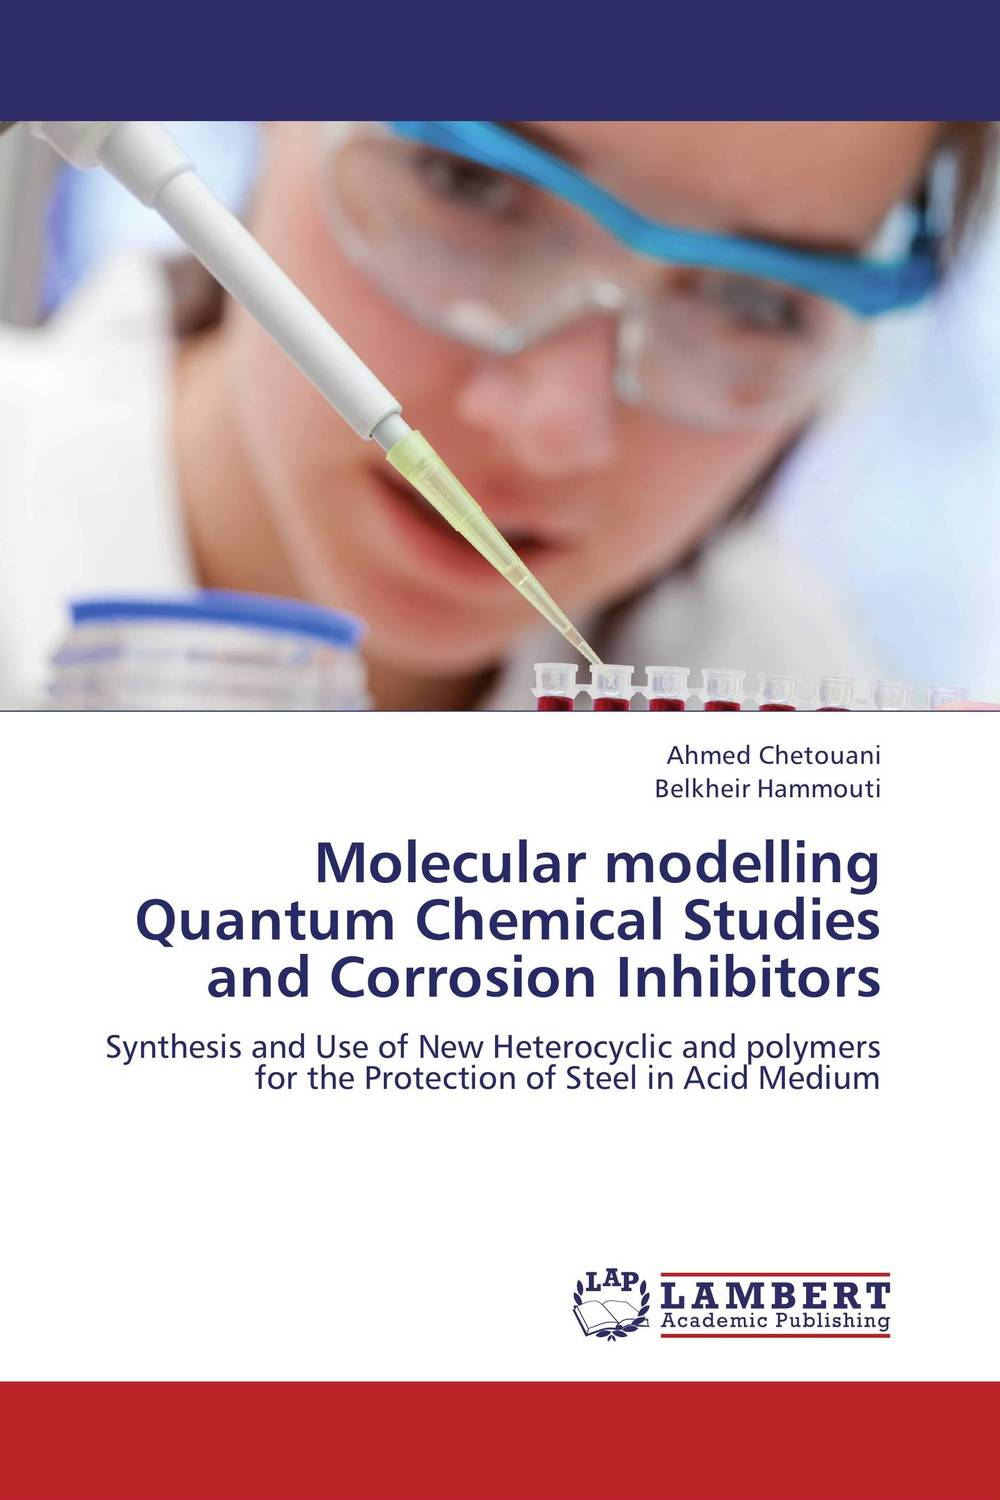 Molecular modelling  Quantum Chemical Studies and Corrosion Inhibitors eman ibrahim el sayed abdel wahab molecular genetic characterization studies of some soybean cultivars